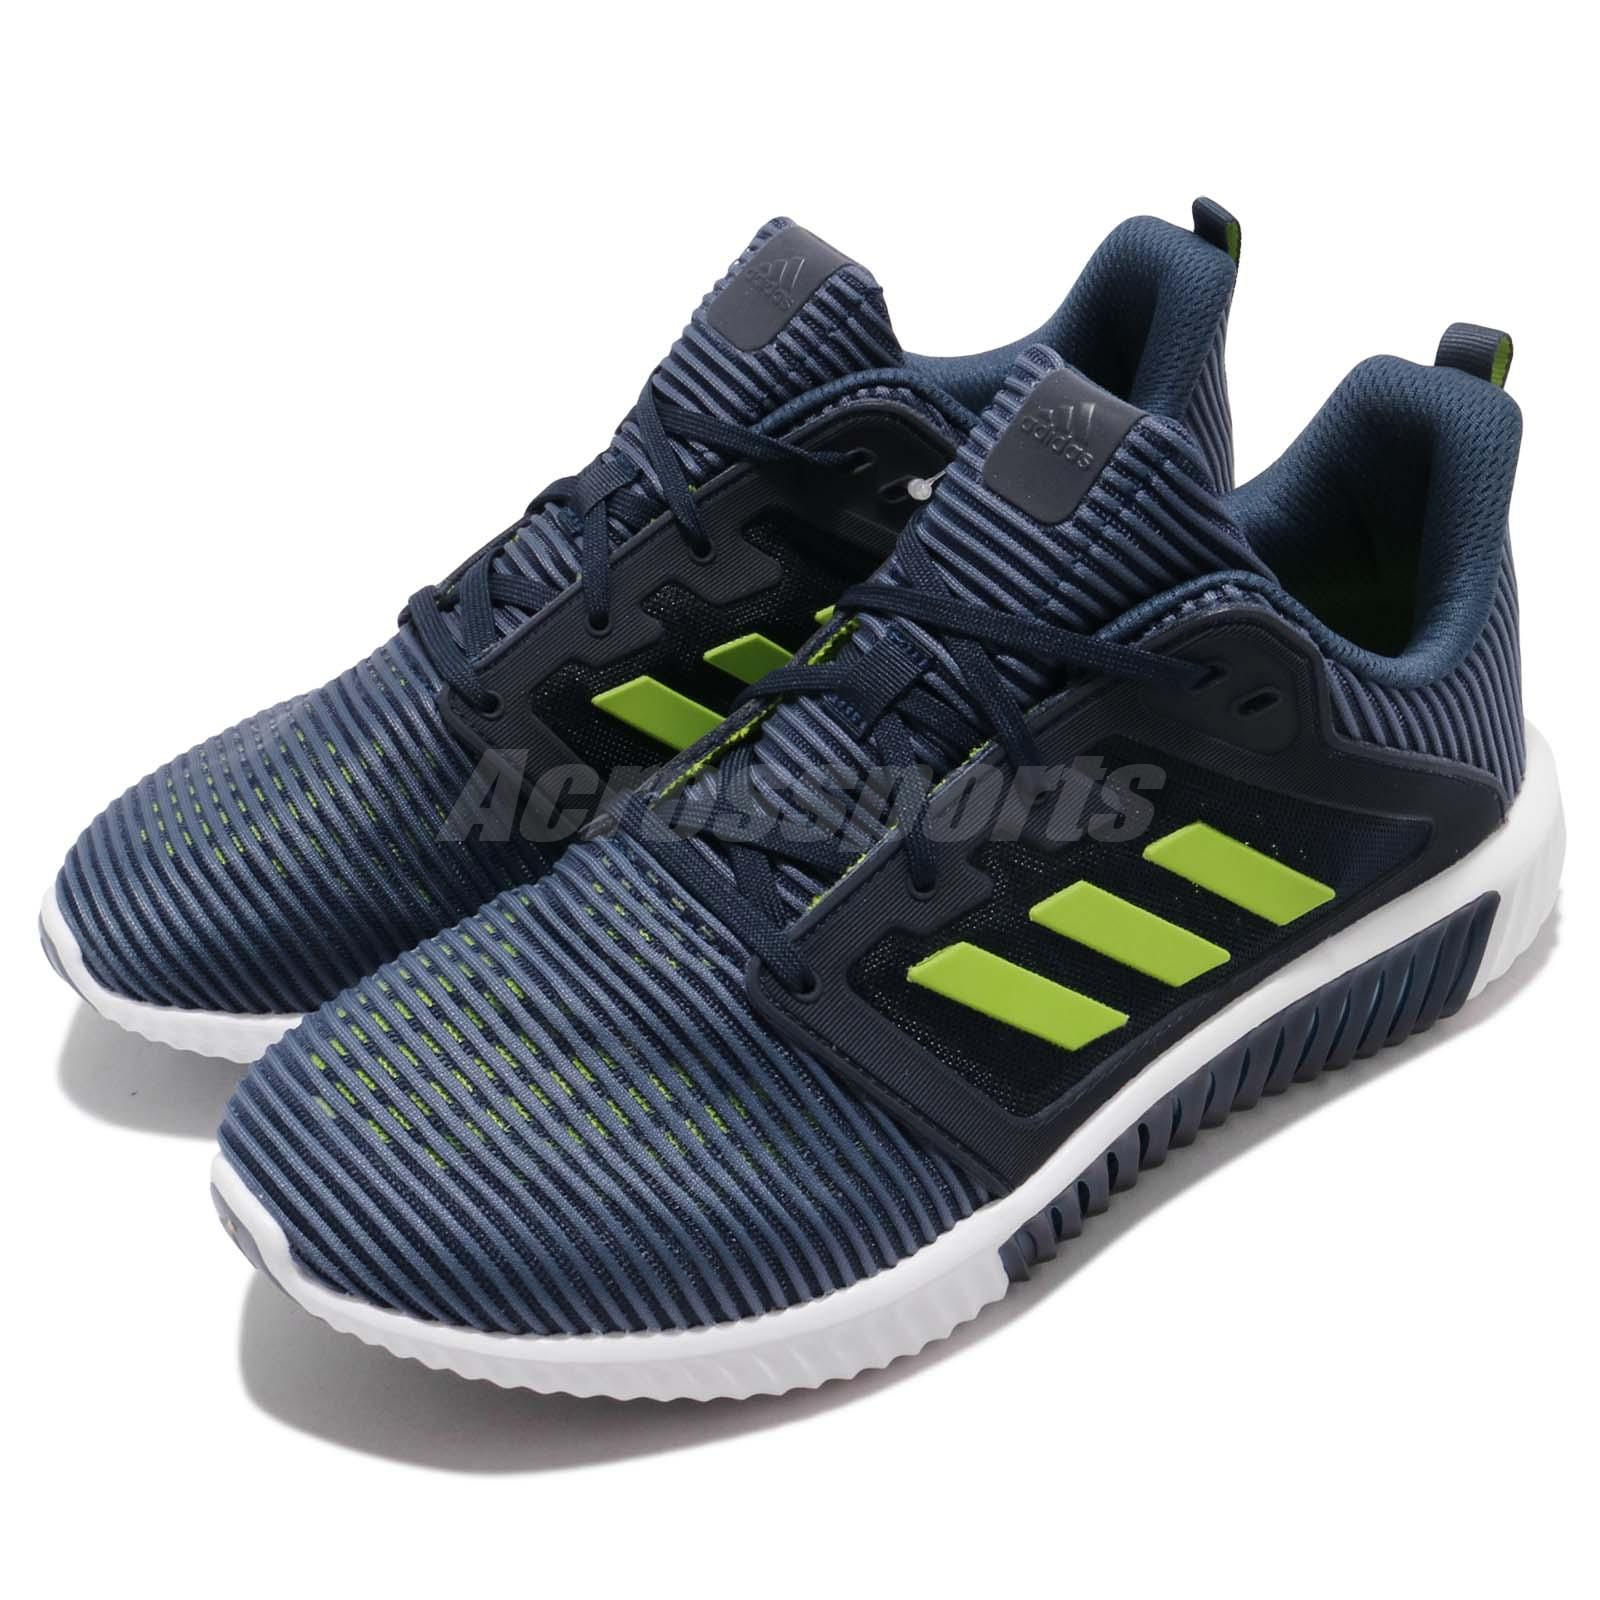 check out b5ded f0580 Details about adidas Climacool Vent M Core Navy Lime Men Running Shoes  Sneakers CM7397